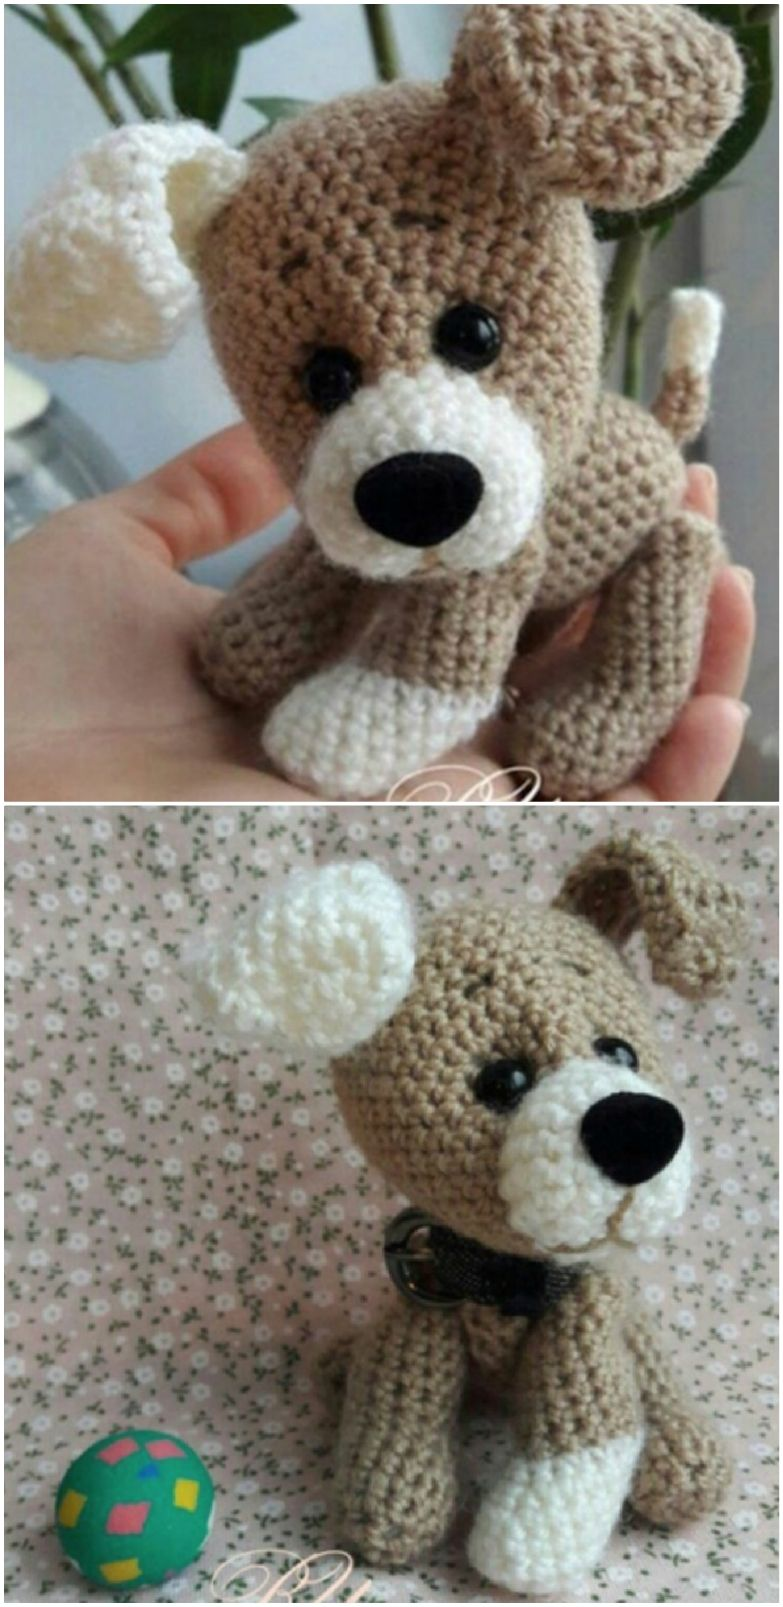 98) Pinterest - Google Chrome - Gyazo | Crochet dolls, Crochet ... | 1607x783